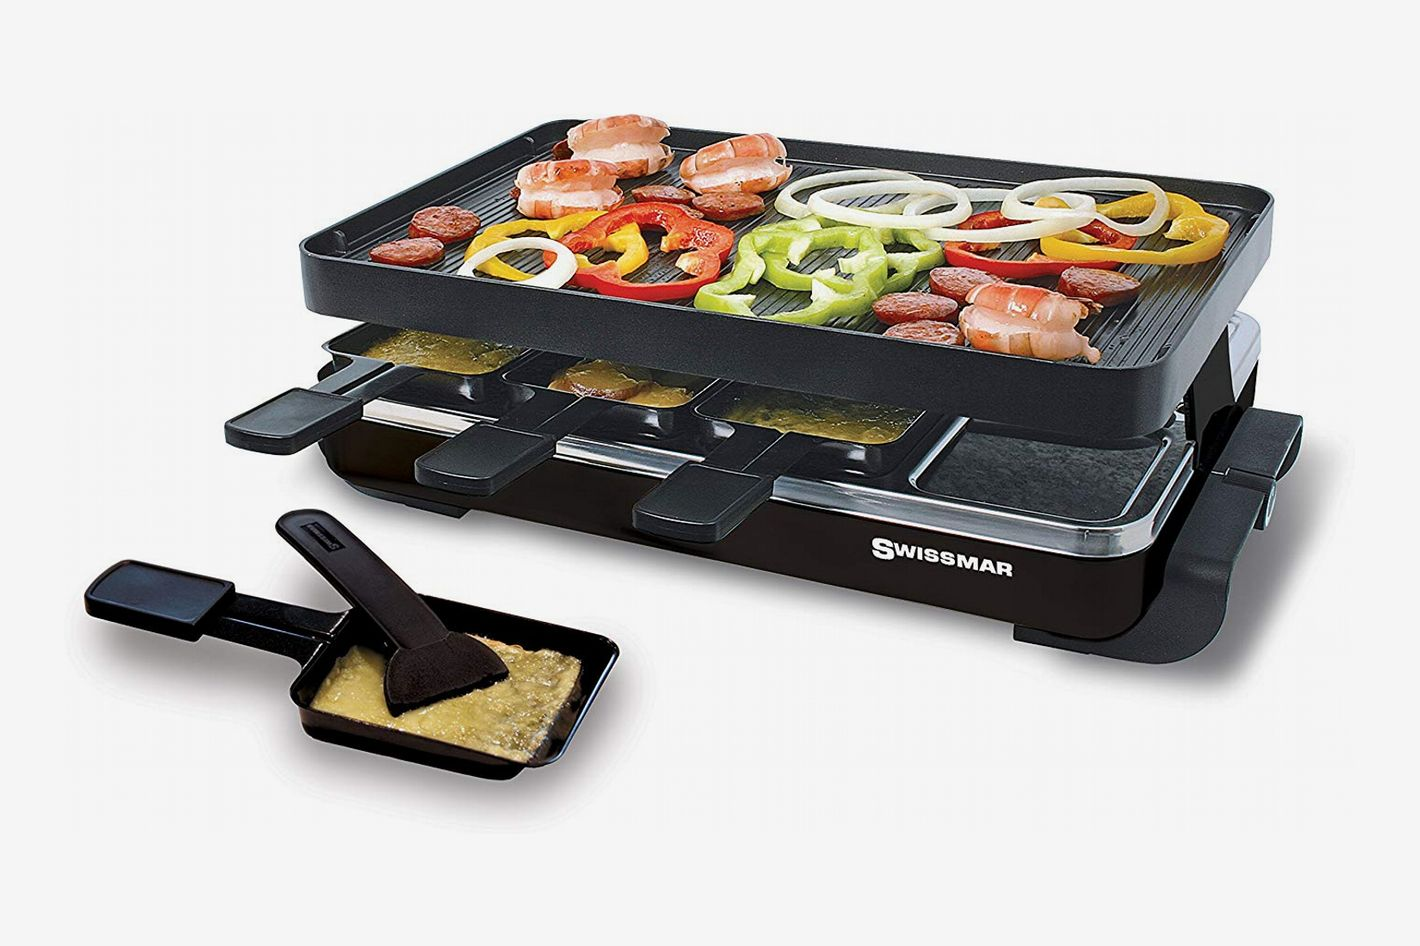 Swissmar KF-77041 Classic 8-Person Raclette With Reversible Cast Aluminum Non-Stick Grill Plate/Crepe Top